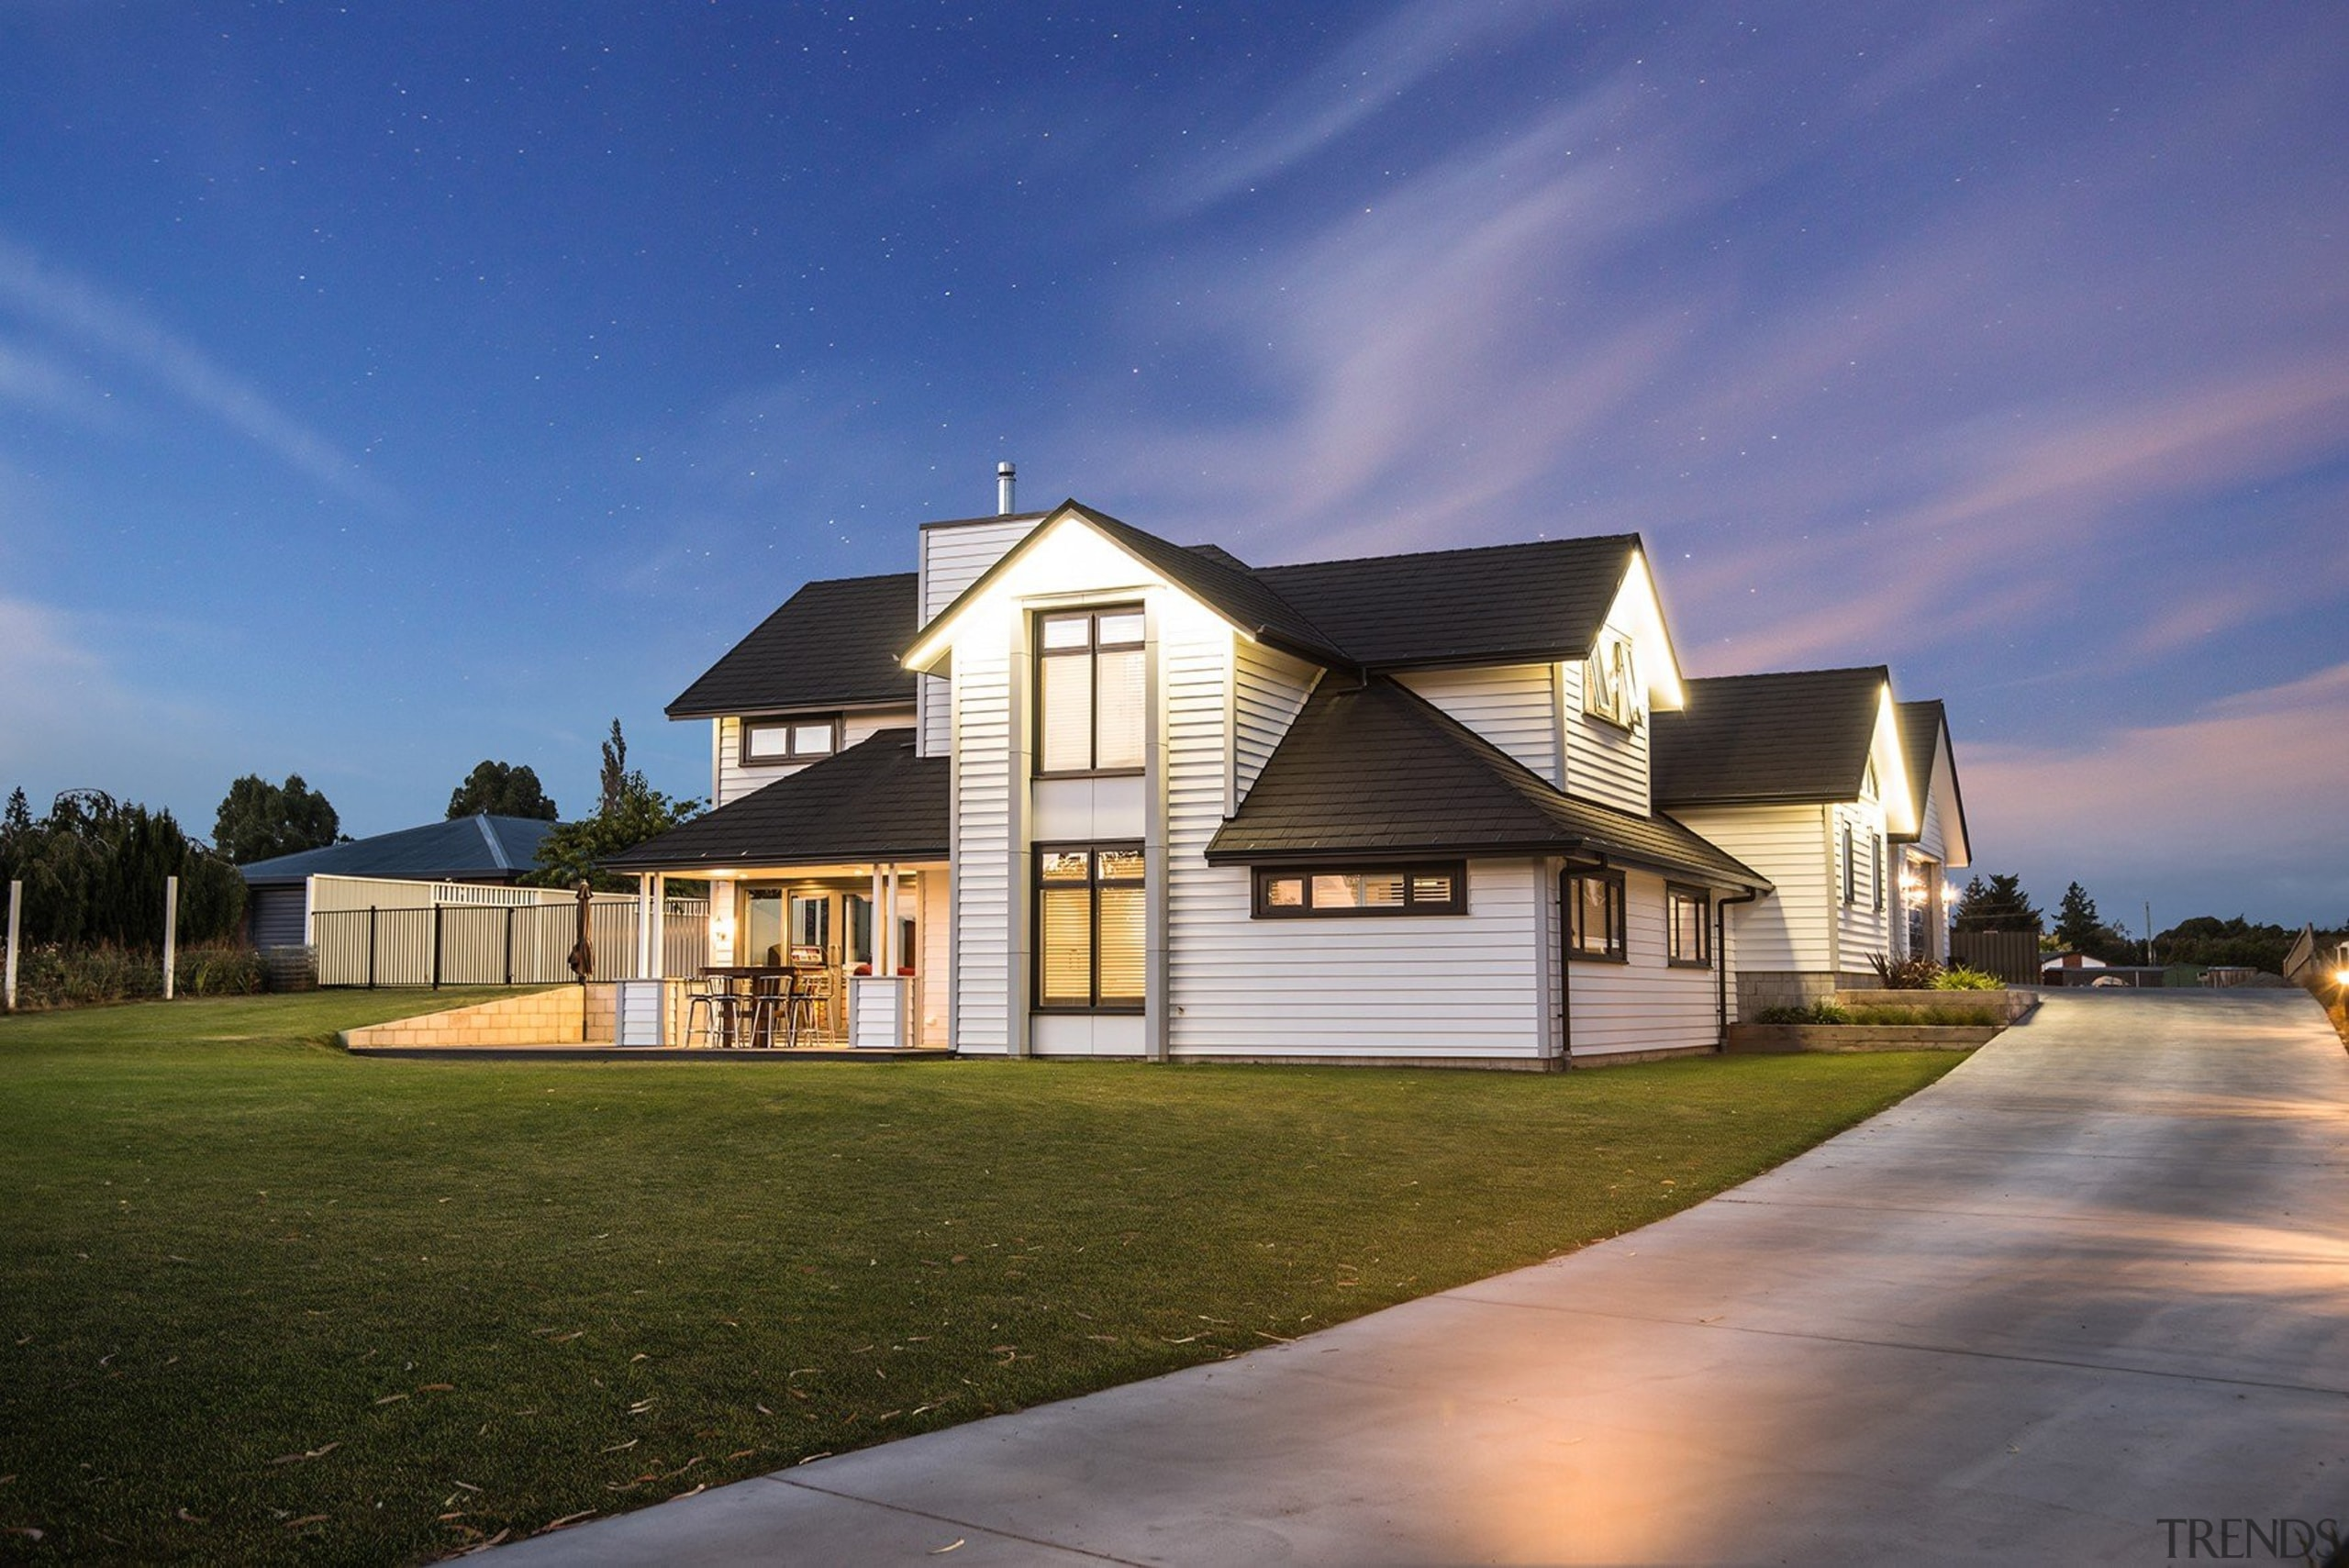 Stunning Two Storey Weatherboard House - Stunning Two architecture, building, cloud, cottage, estate, evening, facade, farmhouse, home, house, property, real estate, residential area, sky, suburb, blue